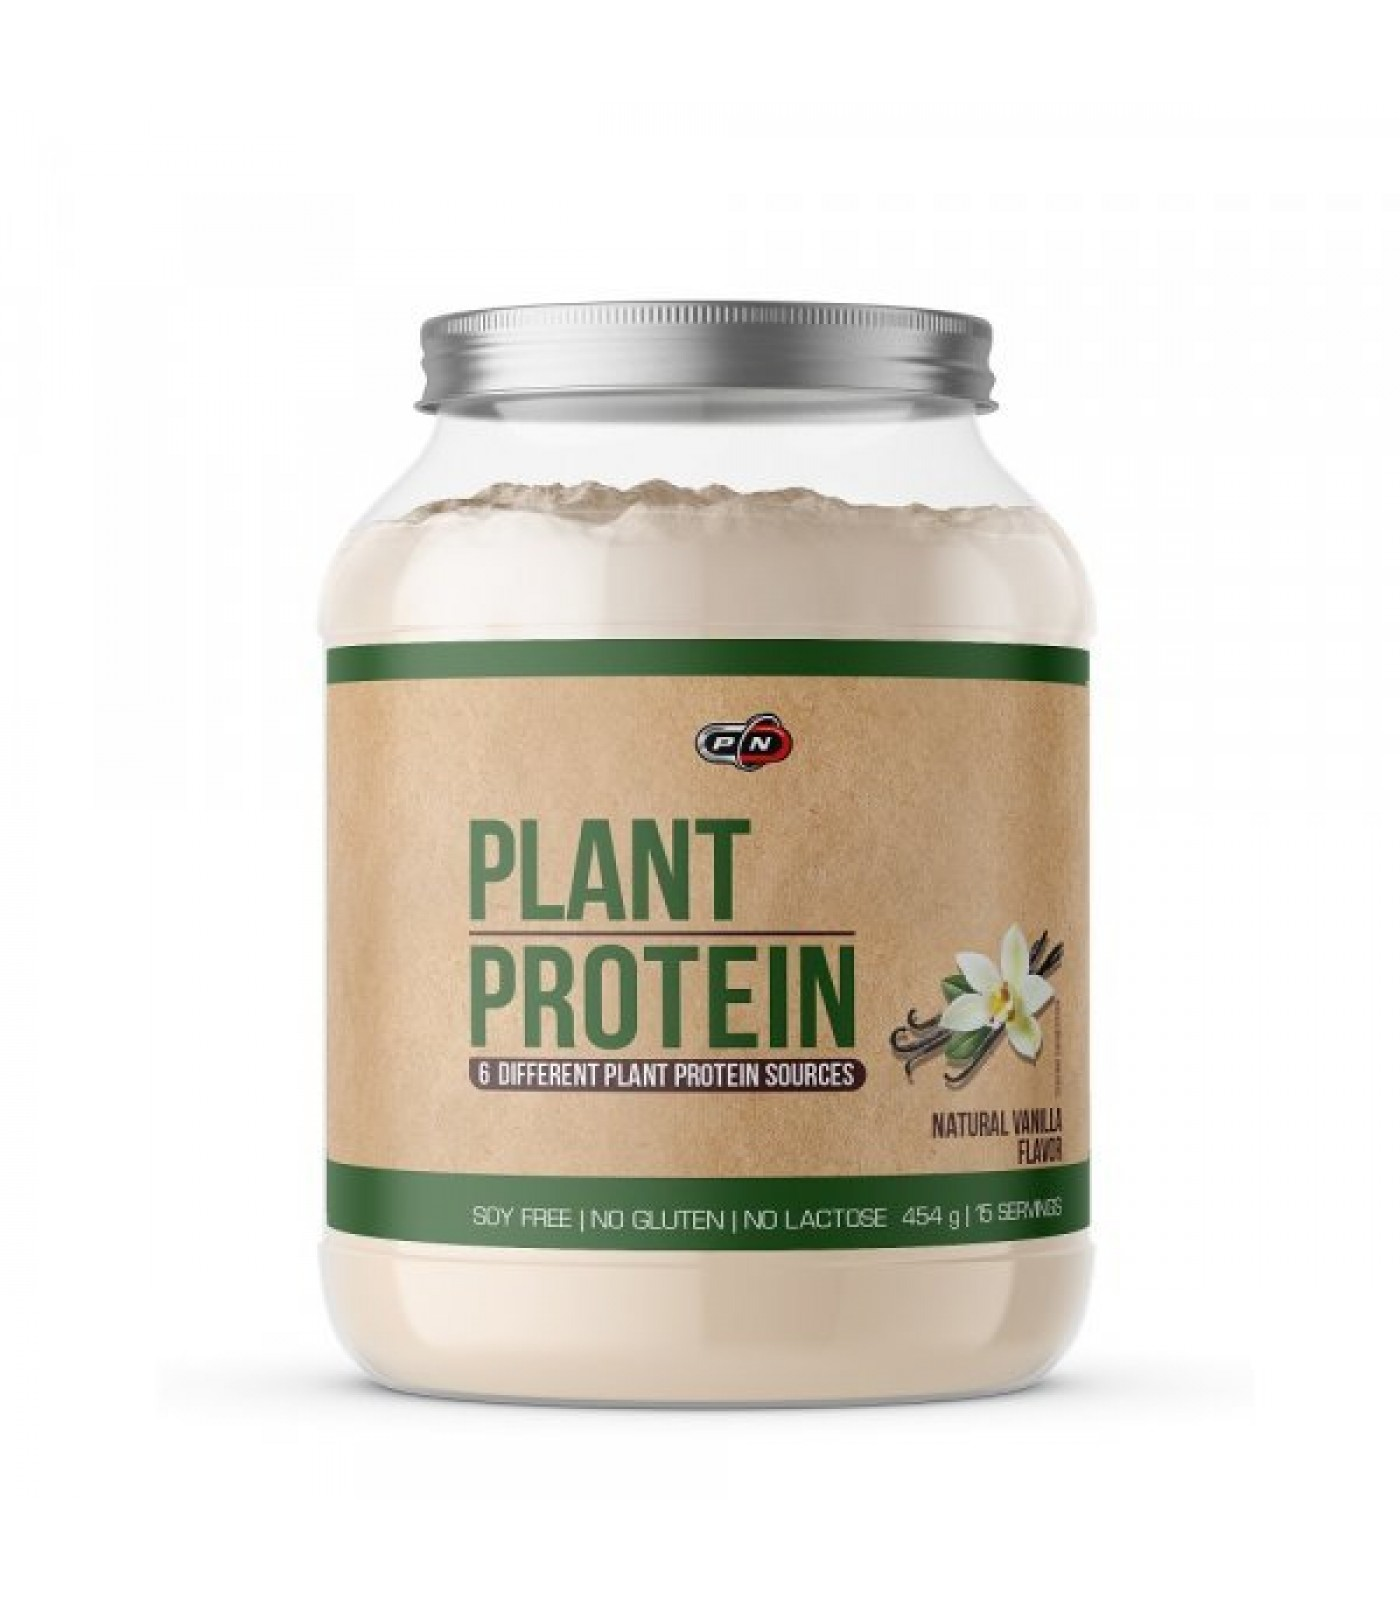 PURE NUTRITION - PLANT PROTEIN / 454g